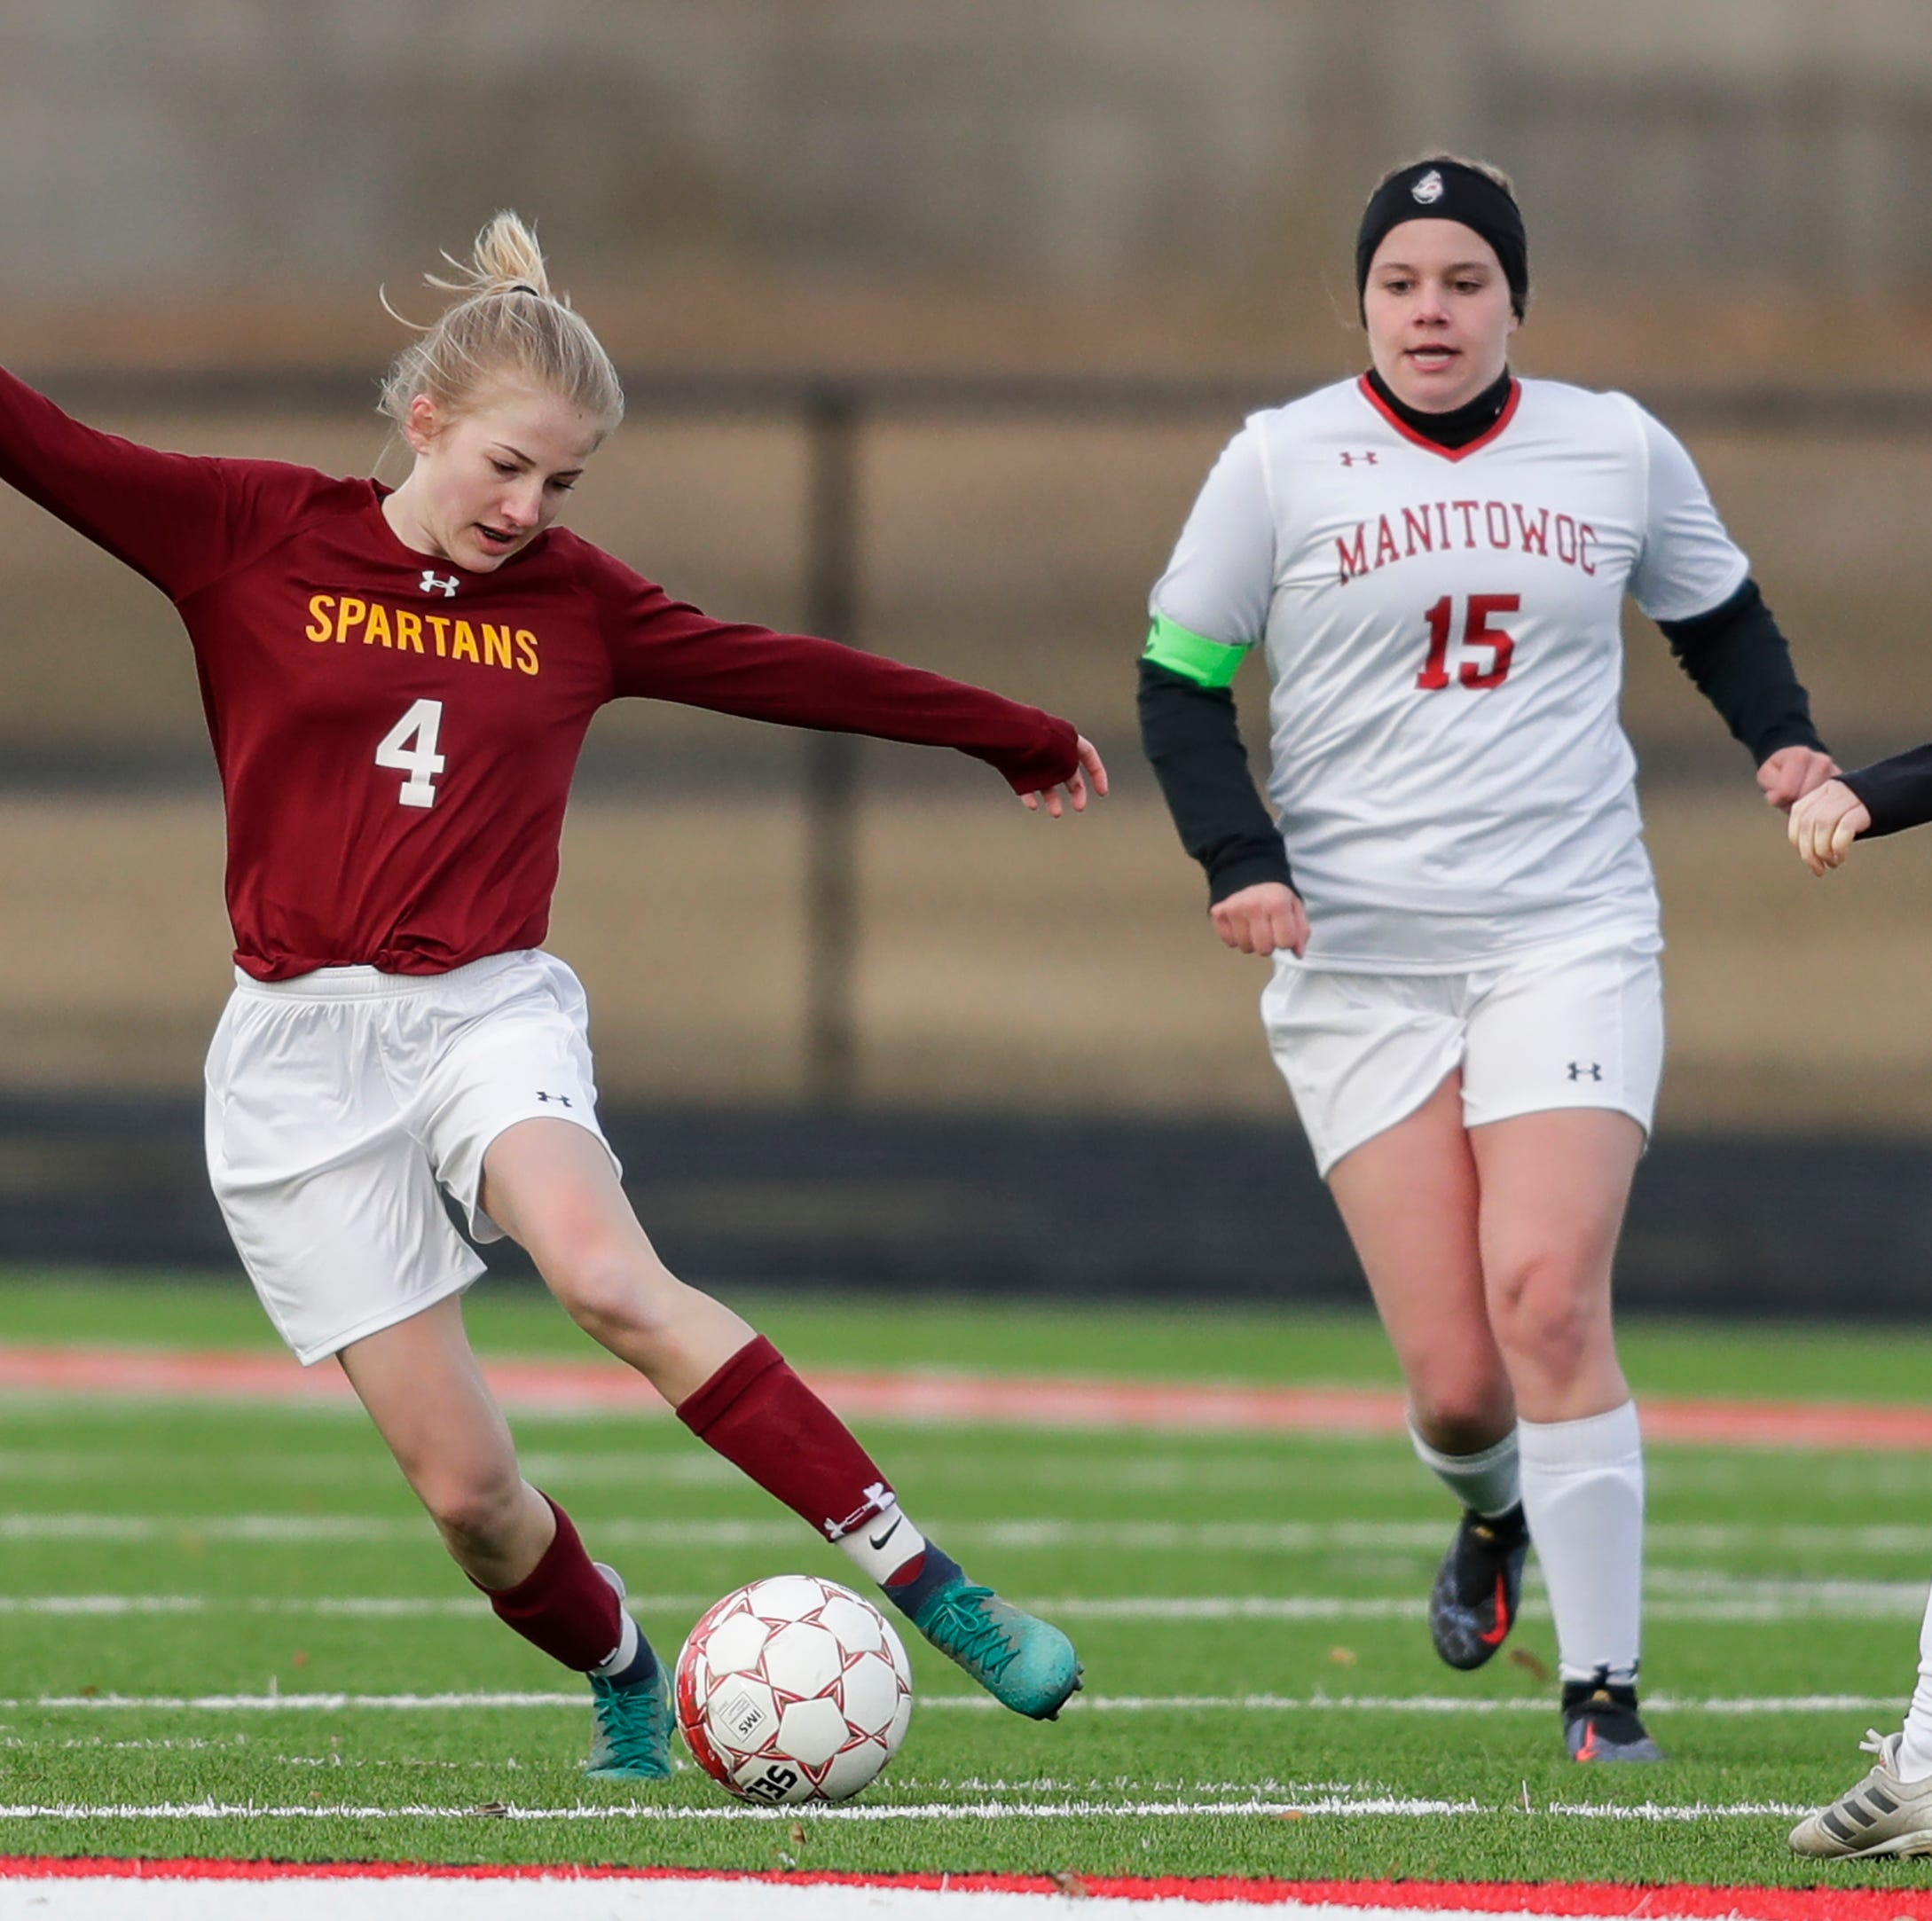 High school: Tuesday's sports results